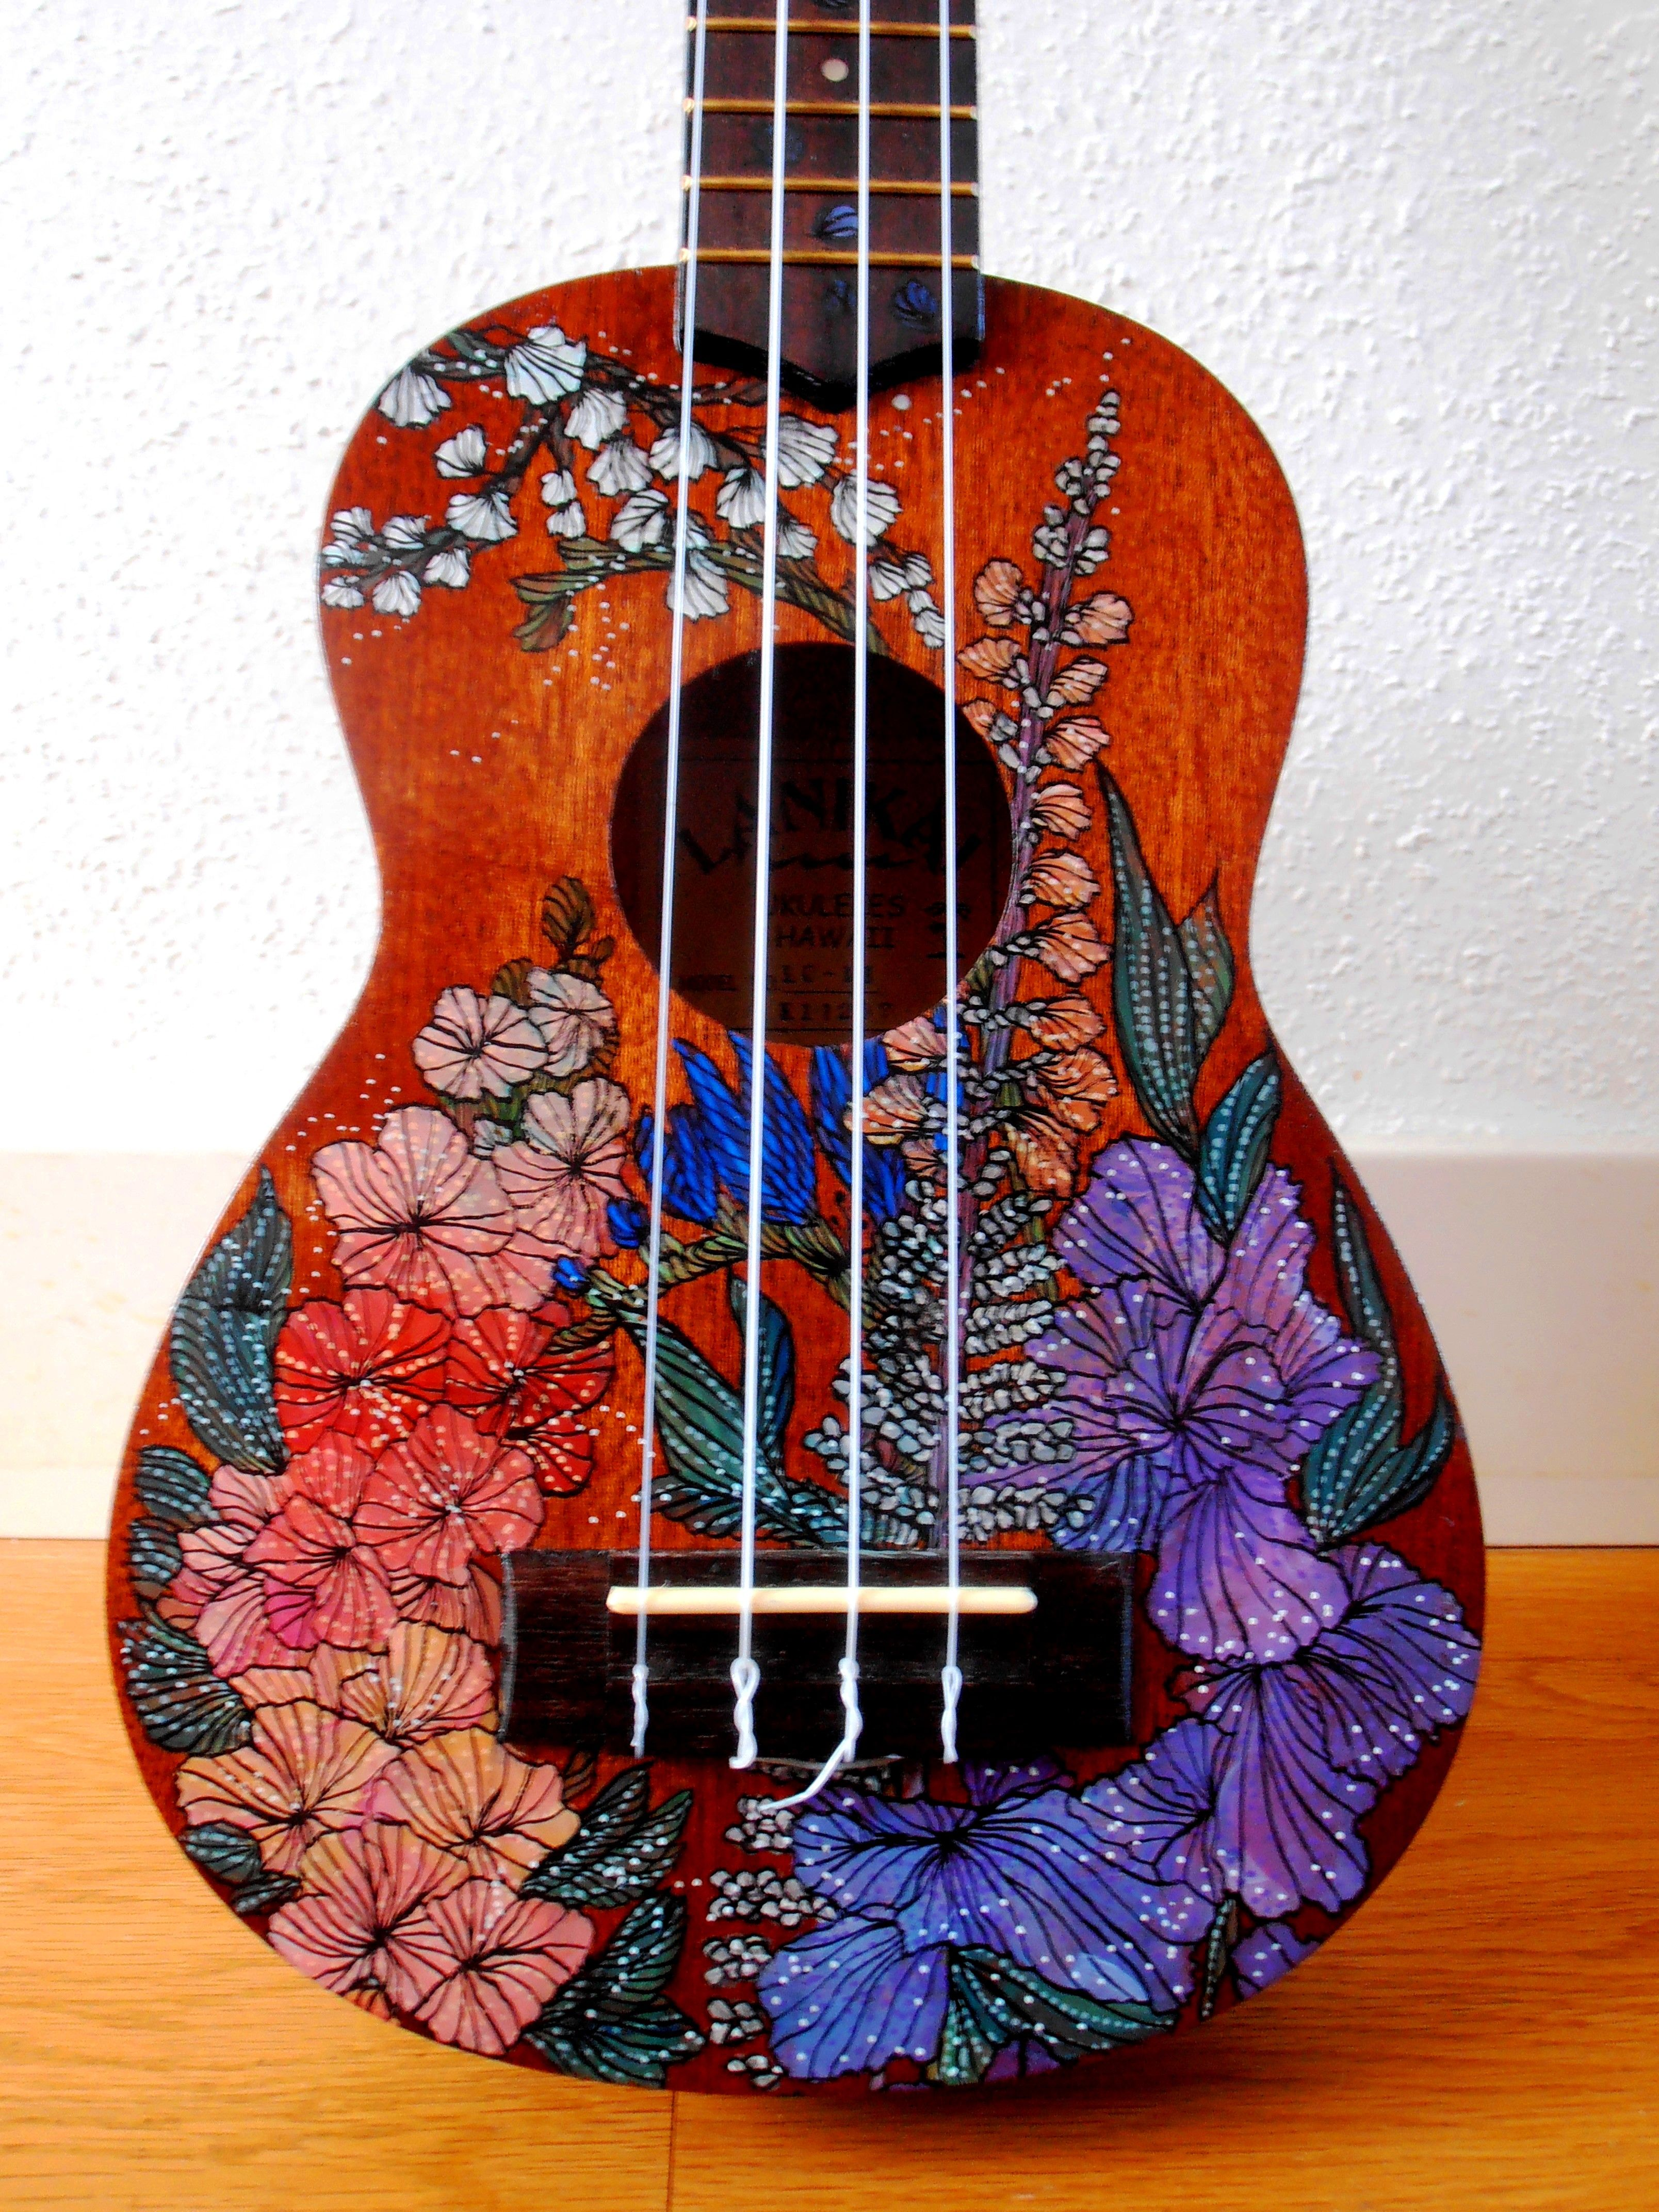 Guitarras Decoradas Handpainted By Suzanne Van Gils Ukulele Pinterest